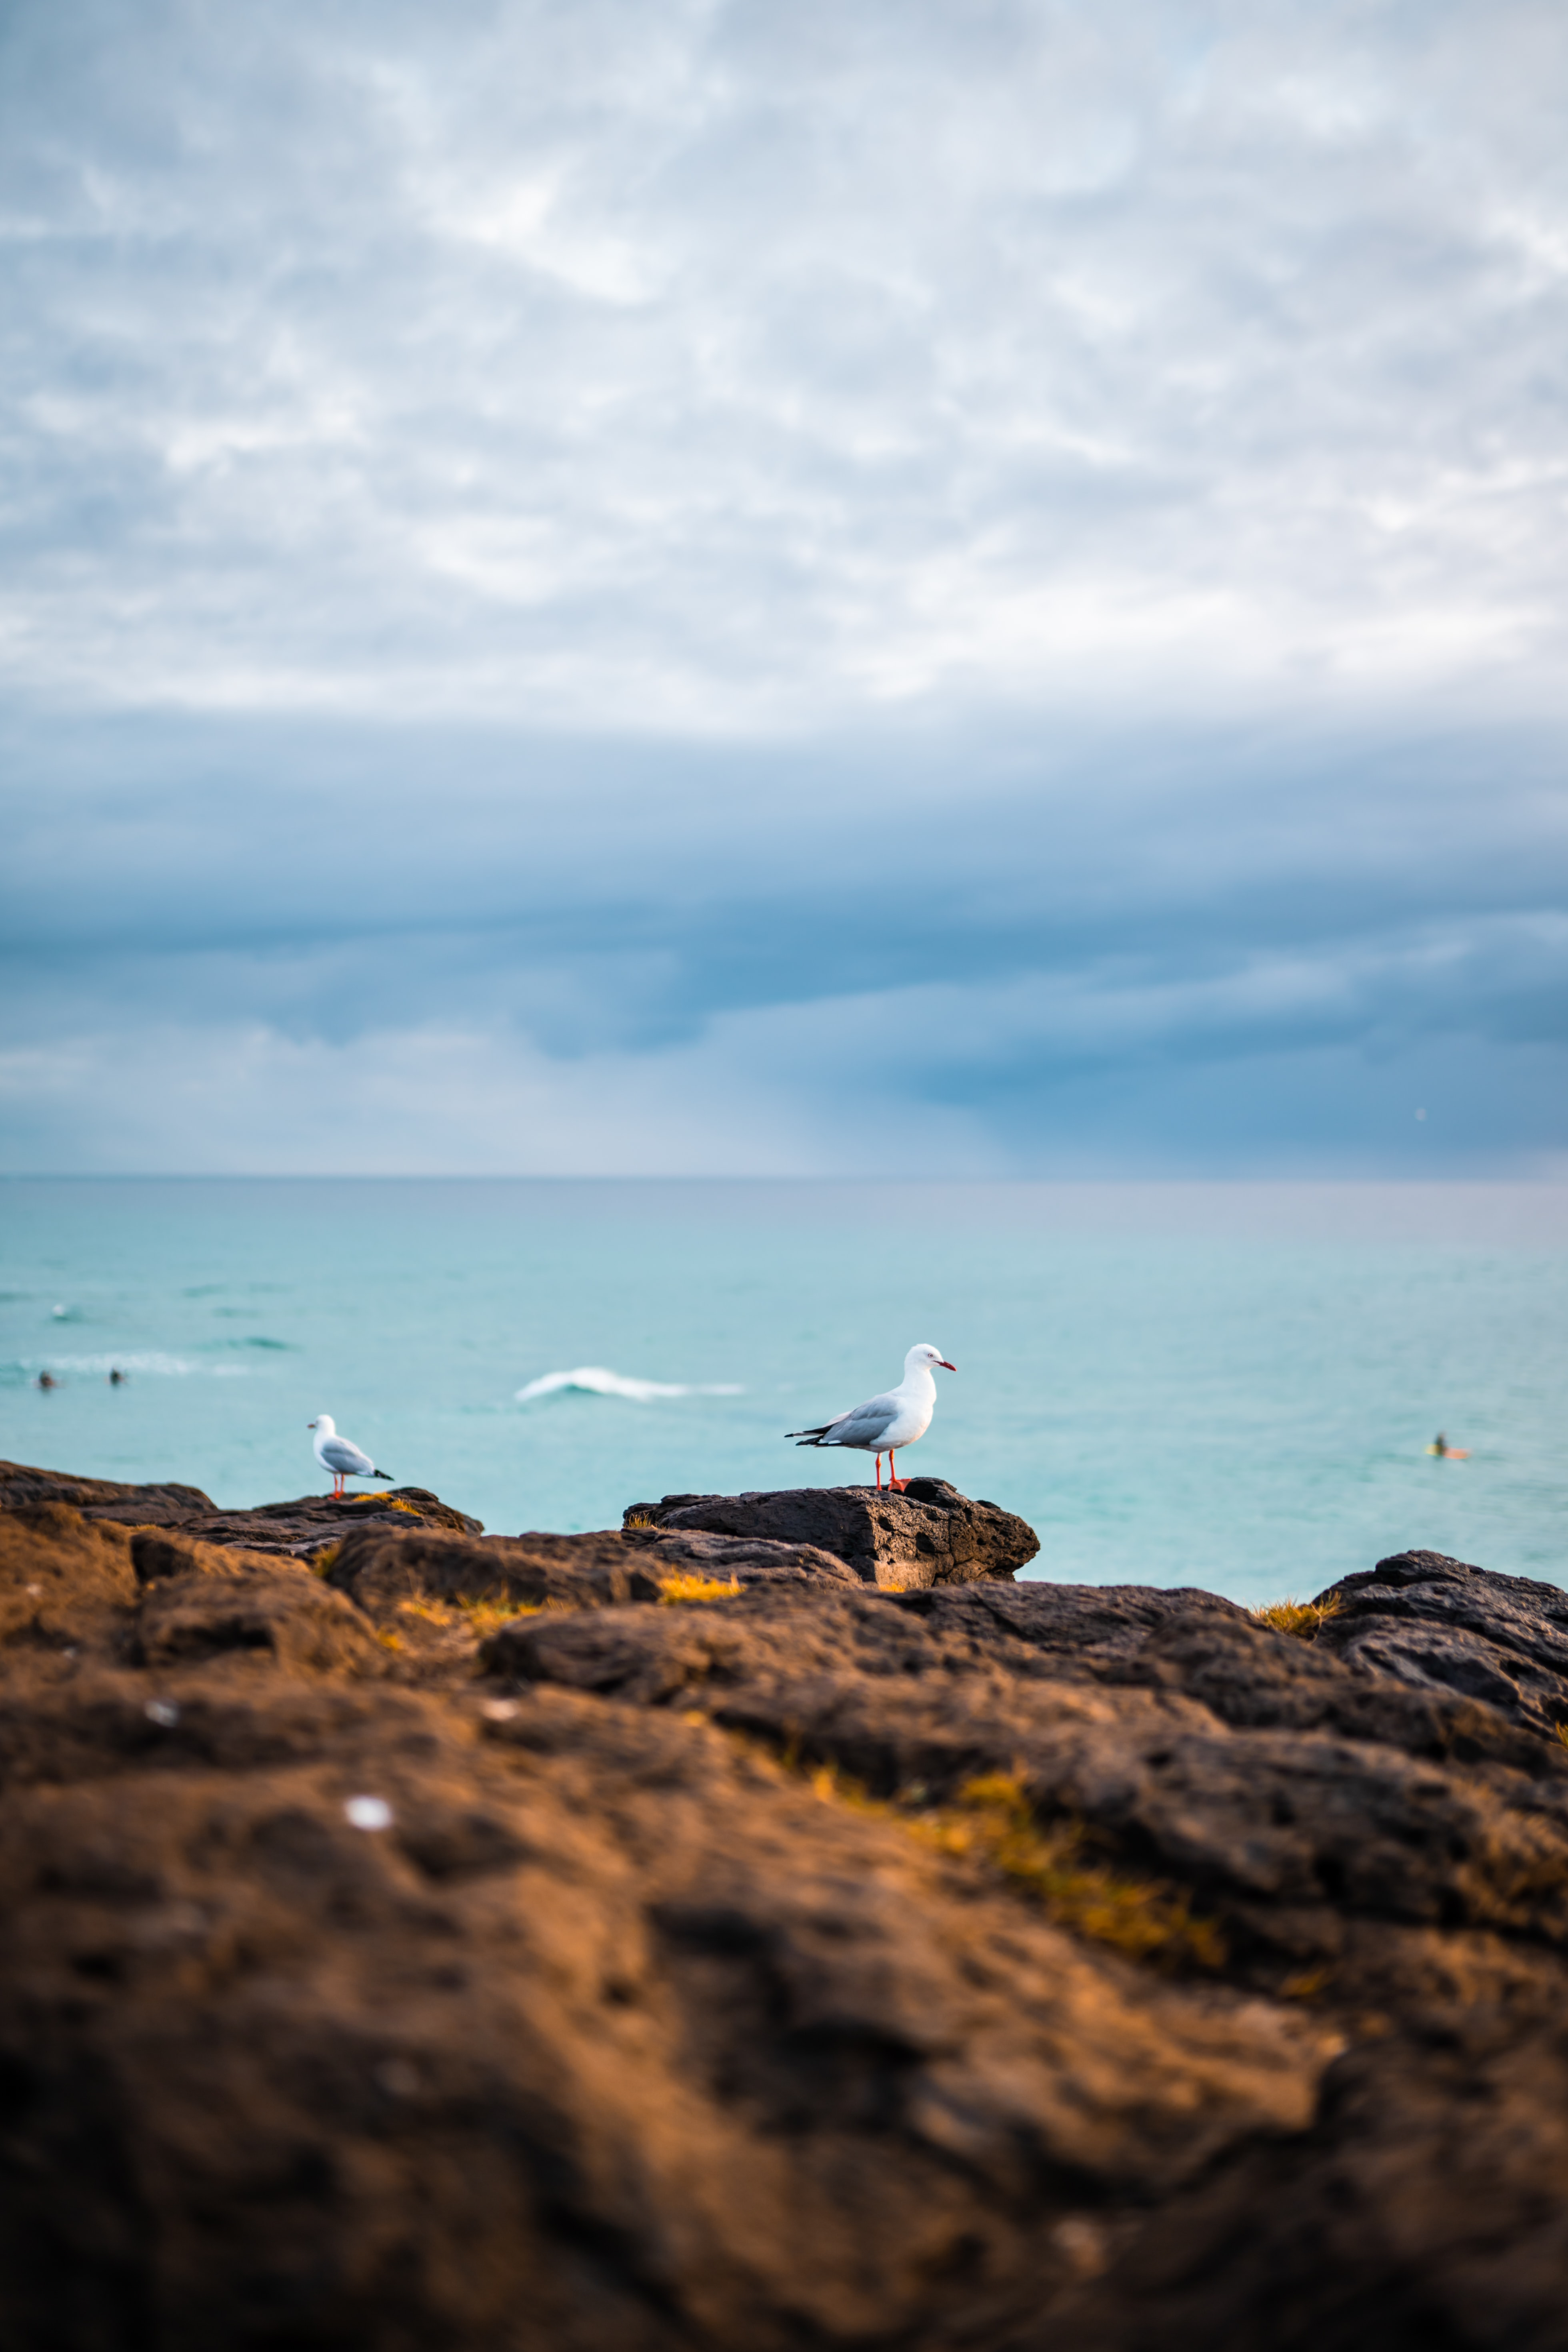 121368 download wallpaper Animals, Rocks, Sea, Birds, Seagulls screensavers and pictures for free